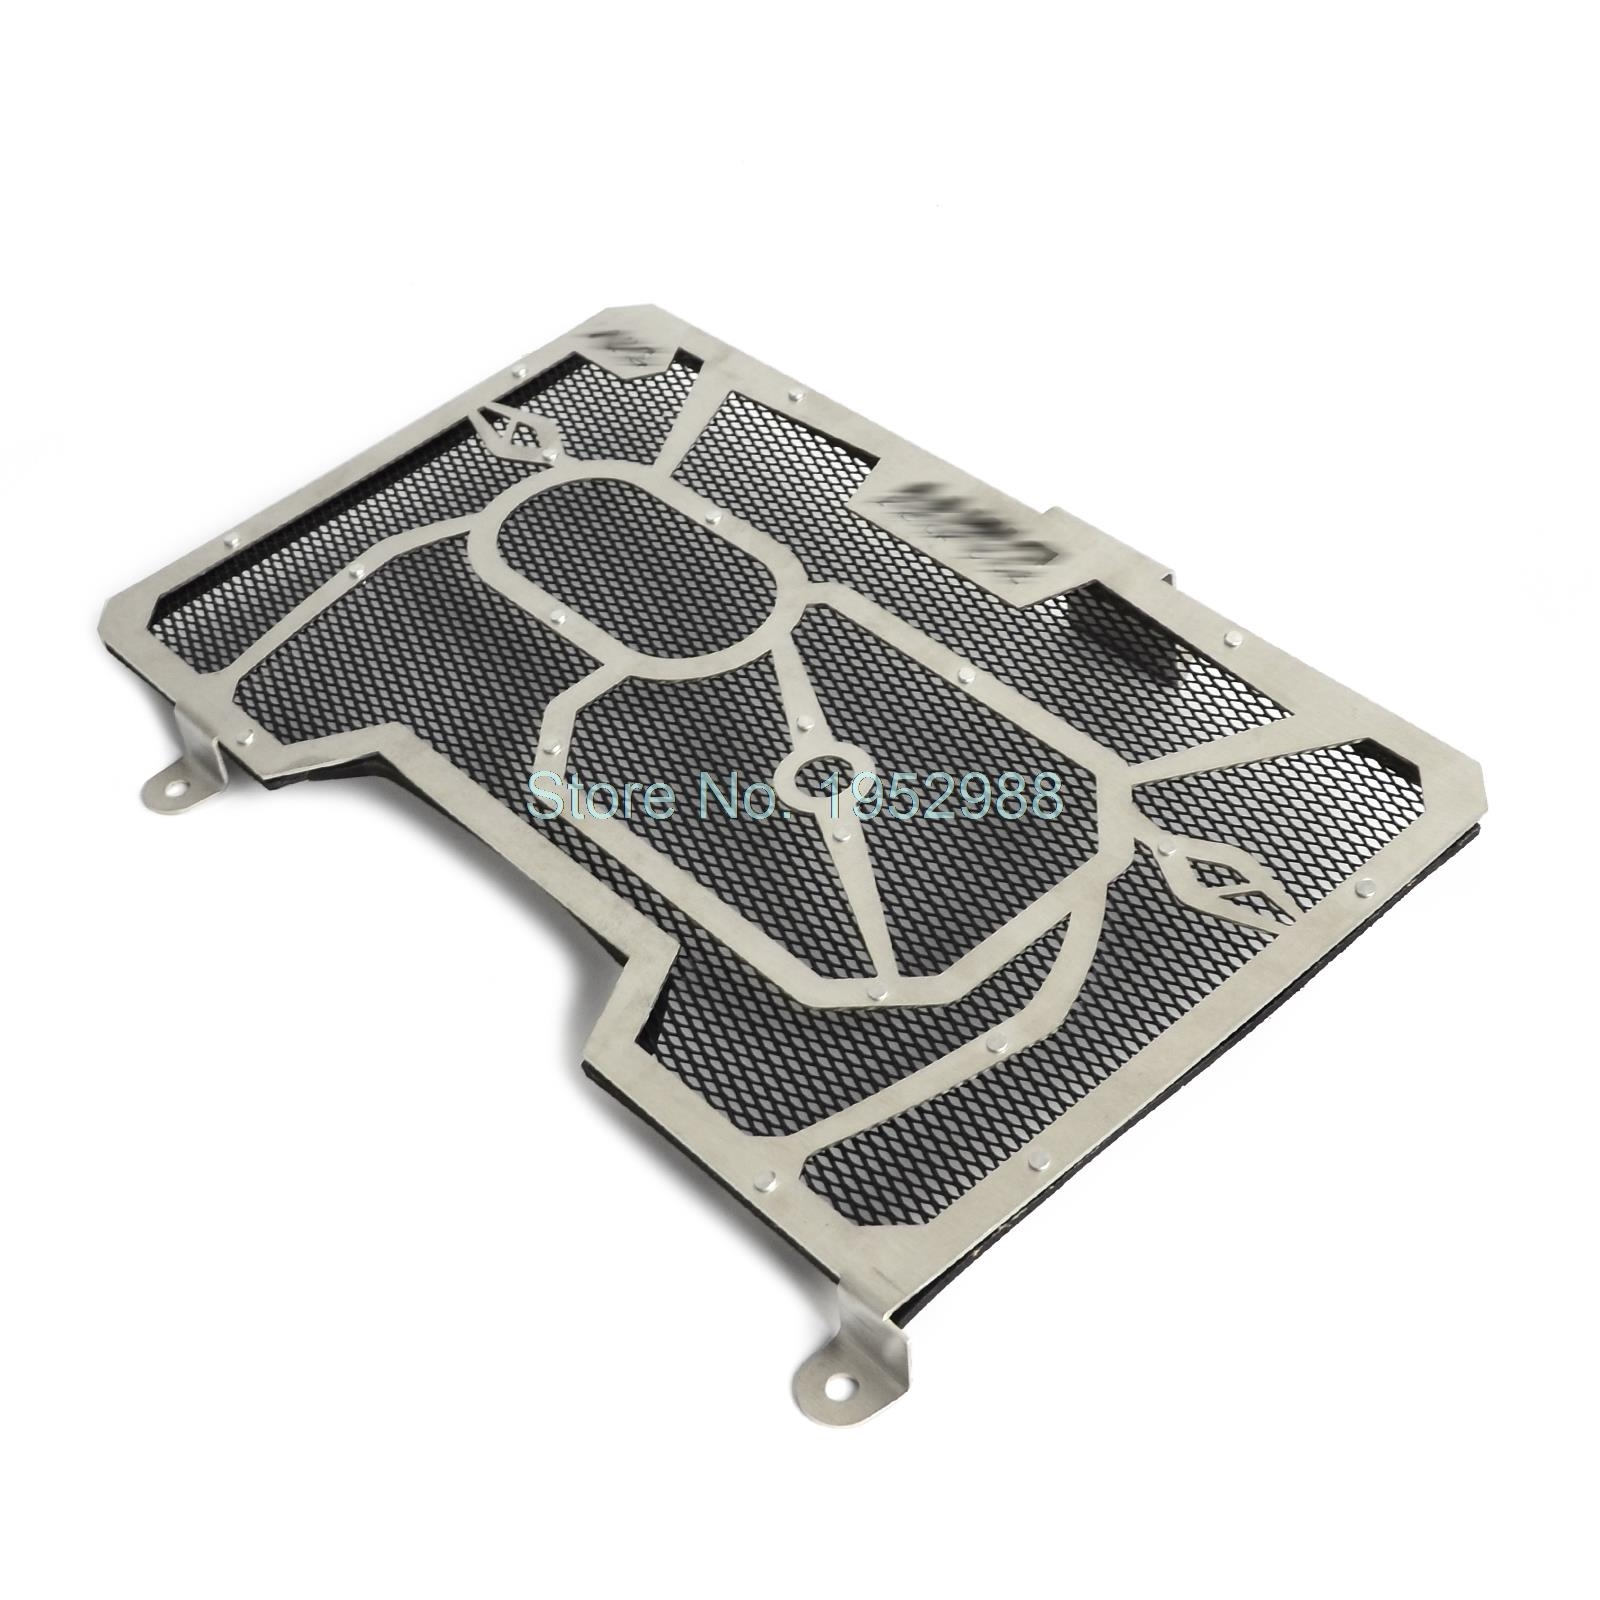 44.95$  Buy now - http://aliv29.worldwells.pw/go.php?t=32750010066 - Motorcycle Radiator Grille Guard Cover Protector Mesh Net Frame for BMW F800R 2009-2016